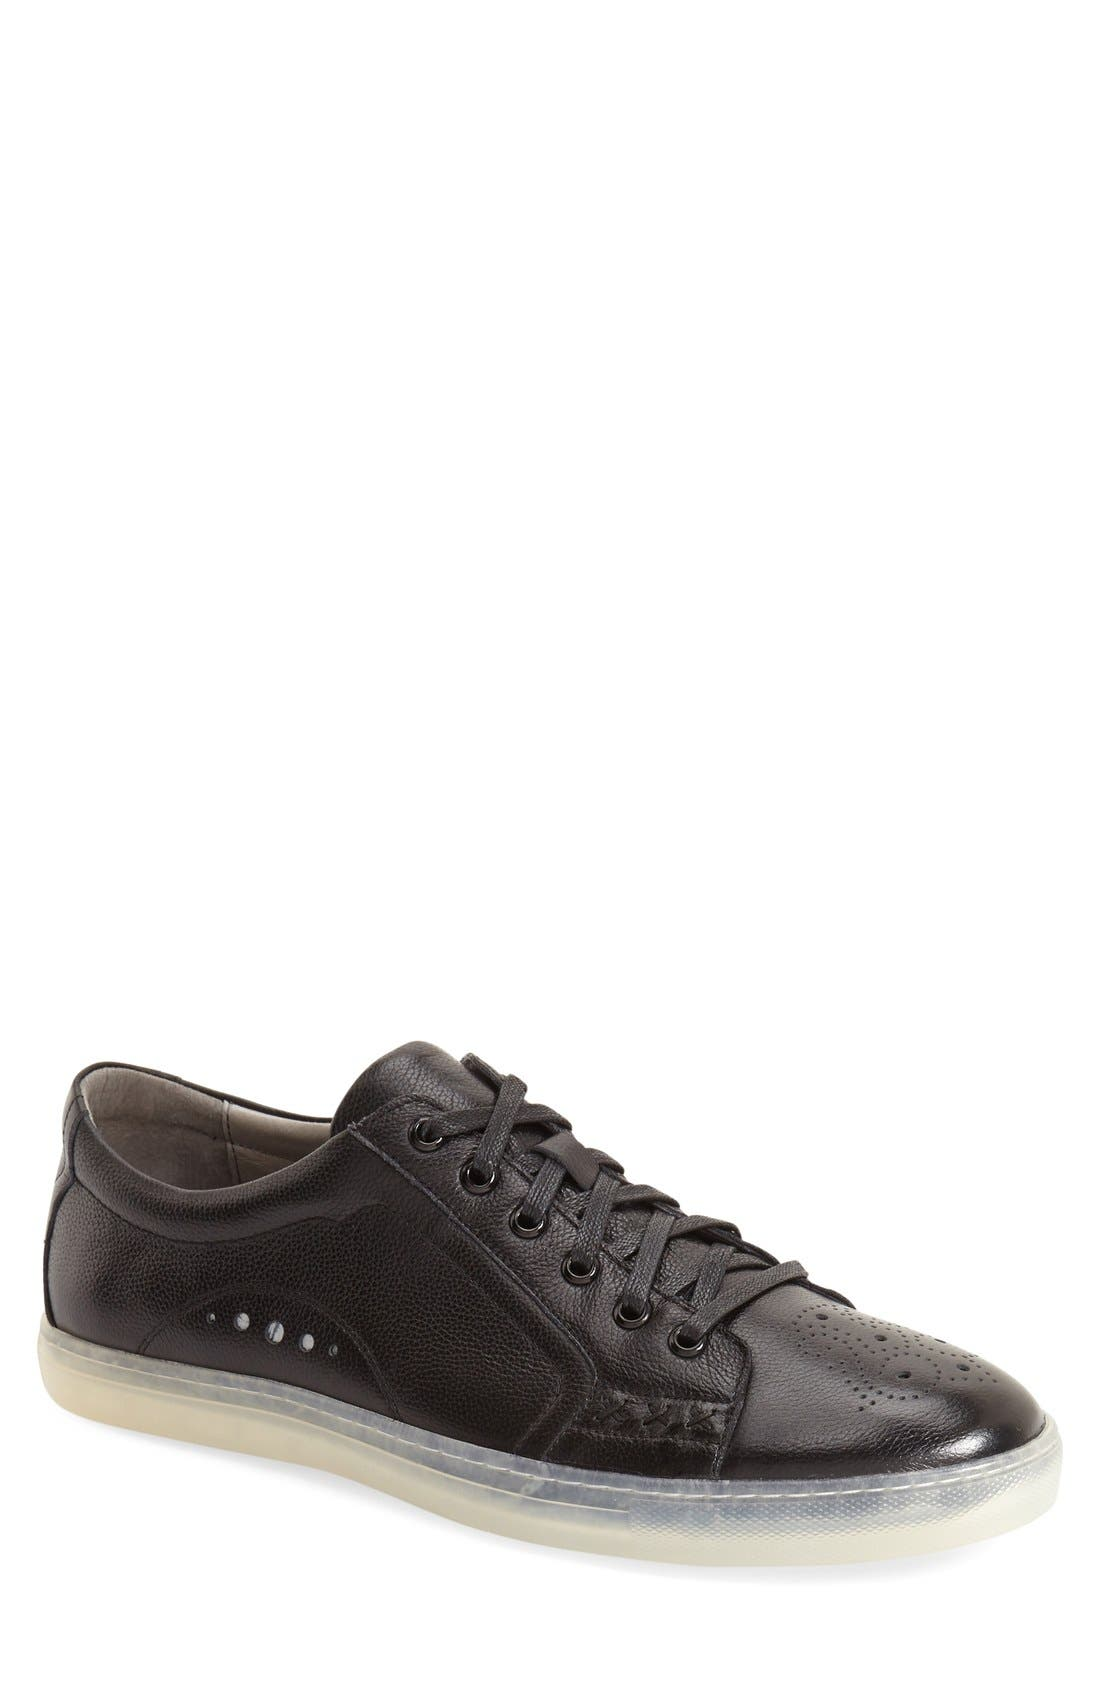 'Drum' Lace-Up Sneaker,                             Main thumbnail 1, color,                             Black Leather